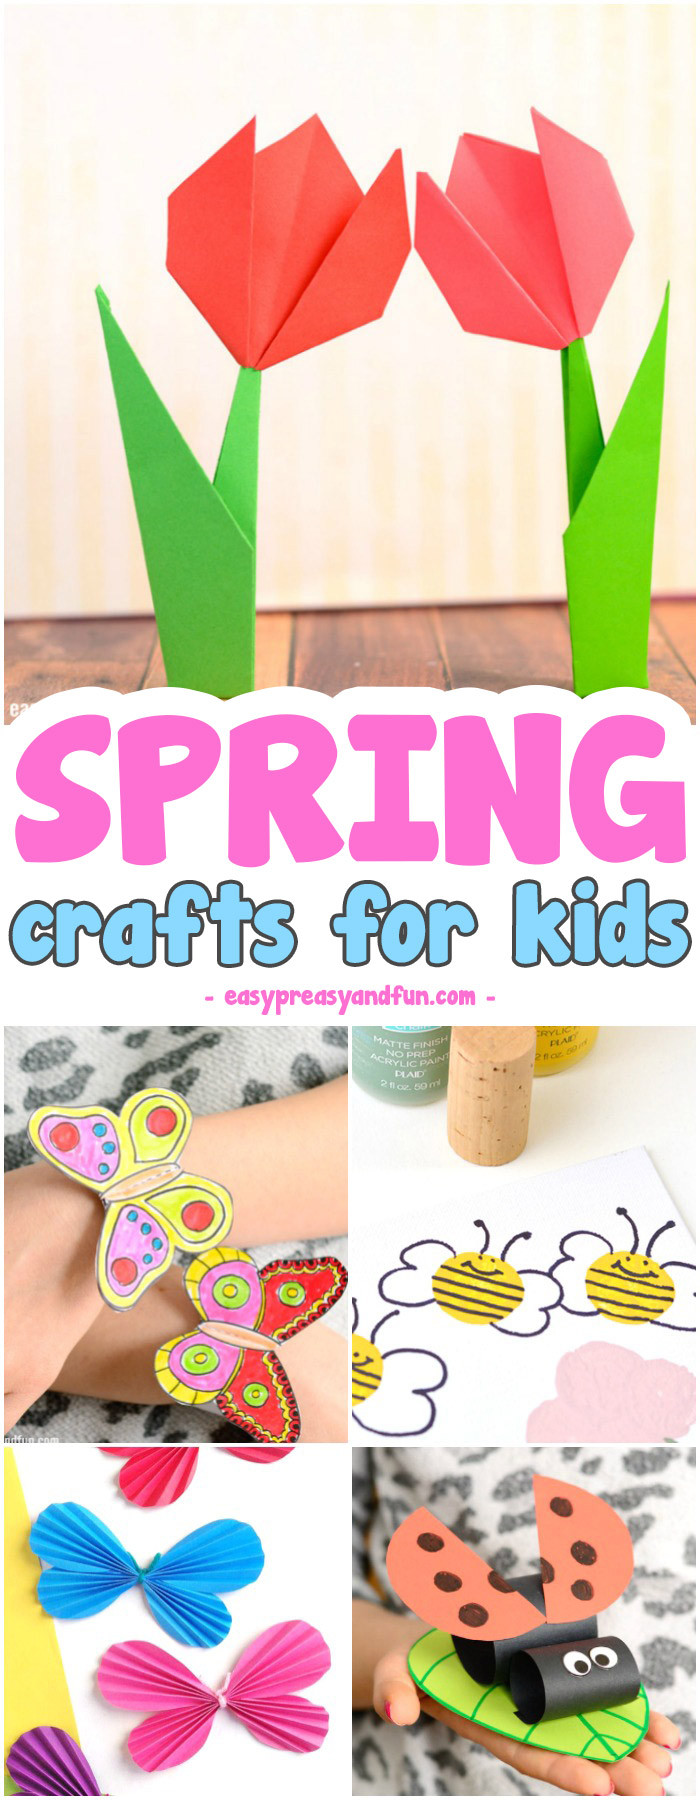 Spring Craft Ideas For Kids  Spring Crafts for Kids Art and Craft Project Ideas for